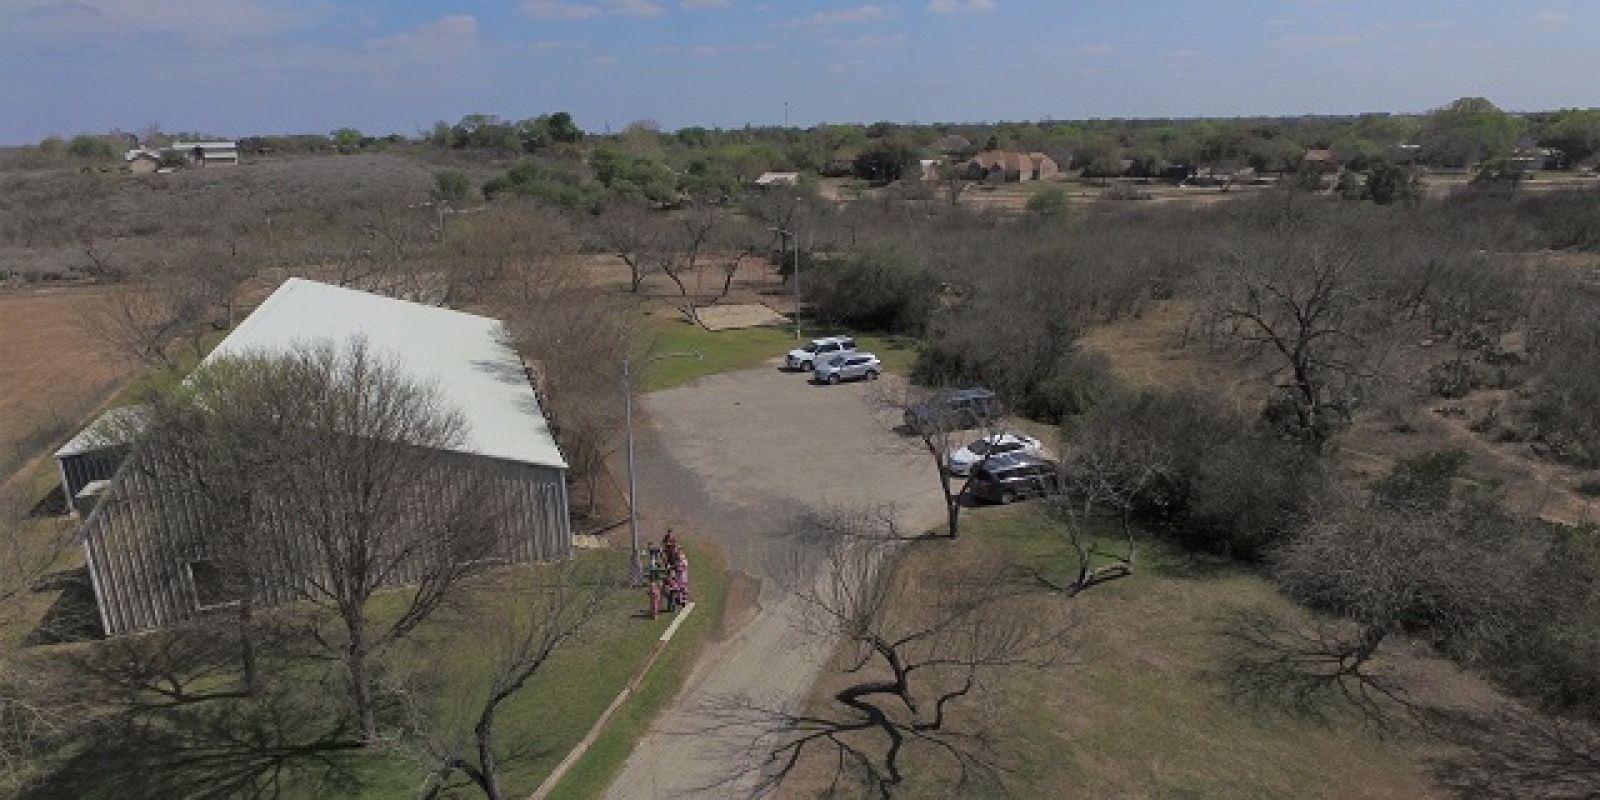 1 Friends Trail, Uvalde, 78801, 8 Rooms Rooms,2 BathroomsBathrooms,Commercial,For Sale,Friends Trail,1064